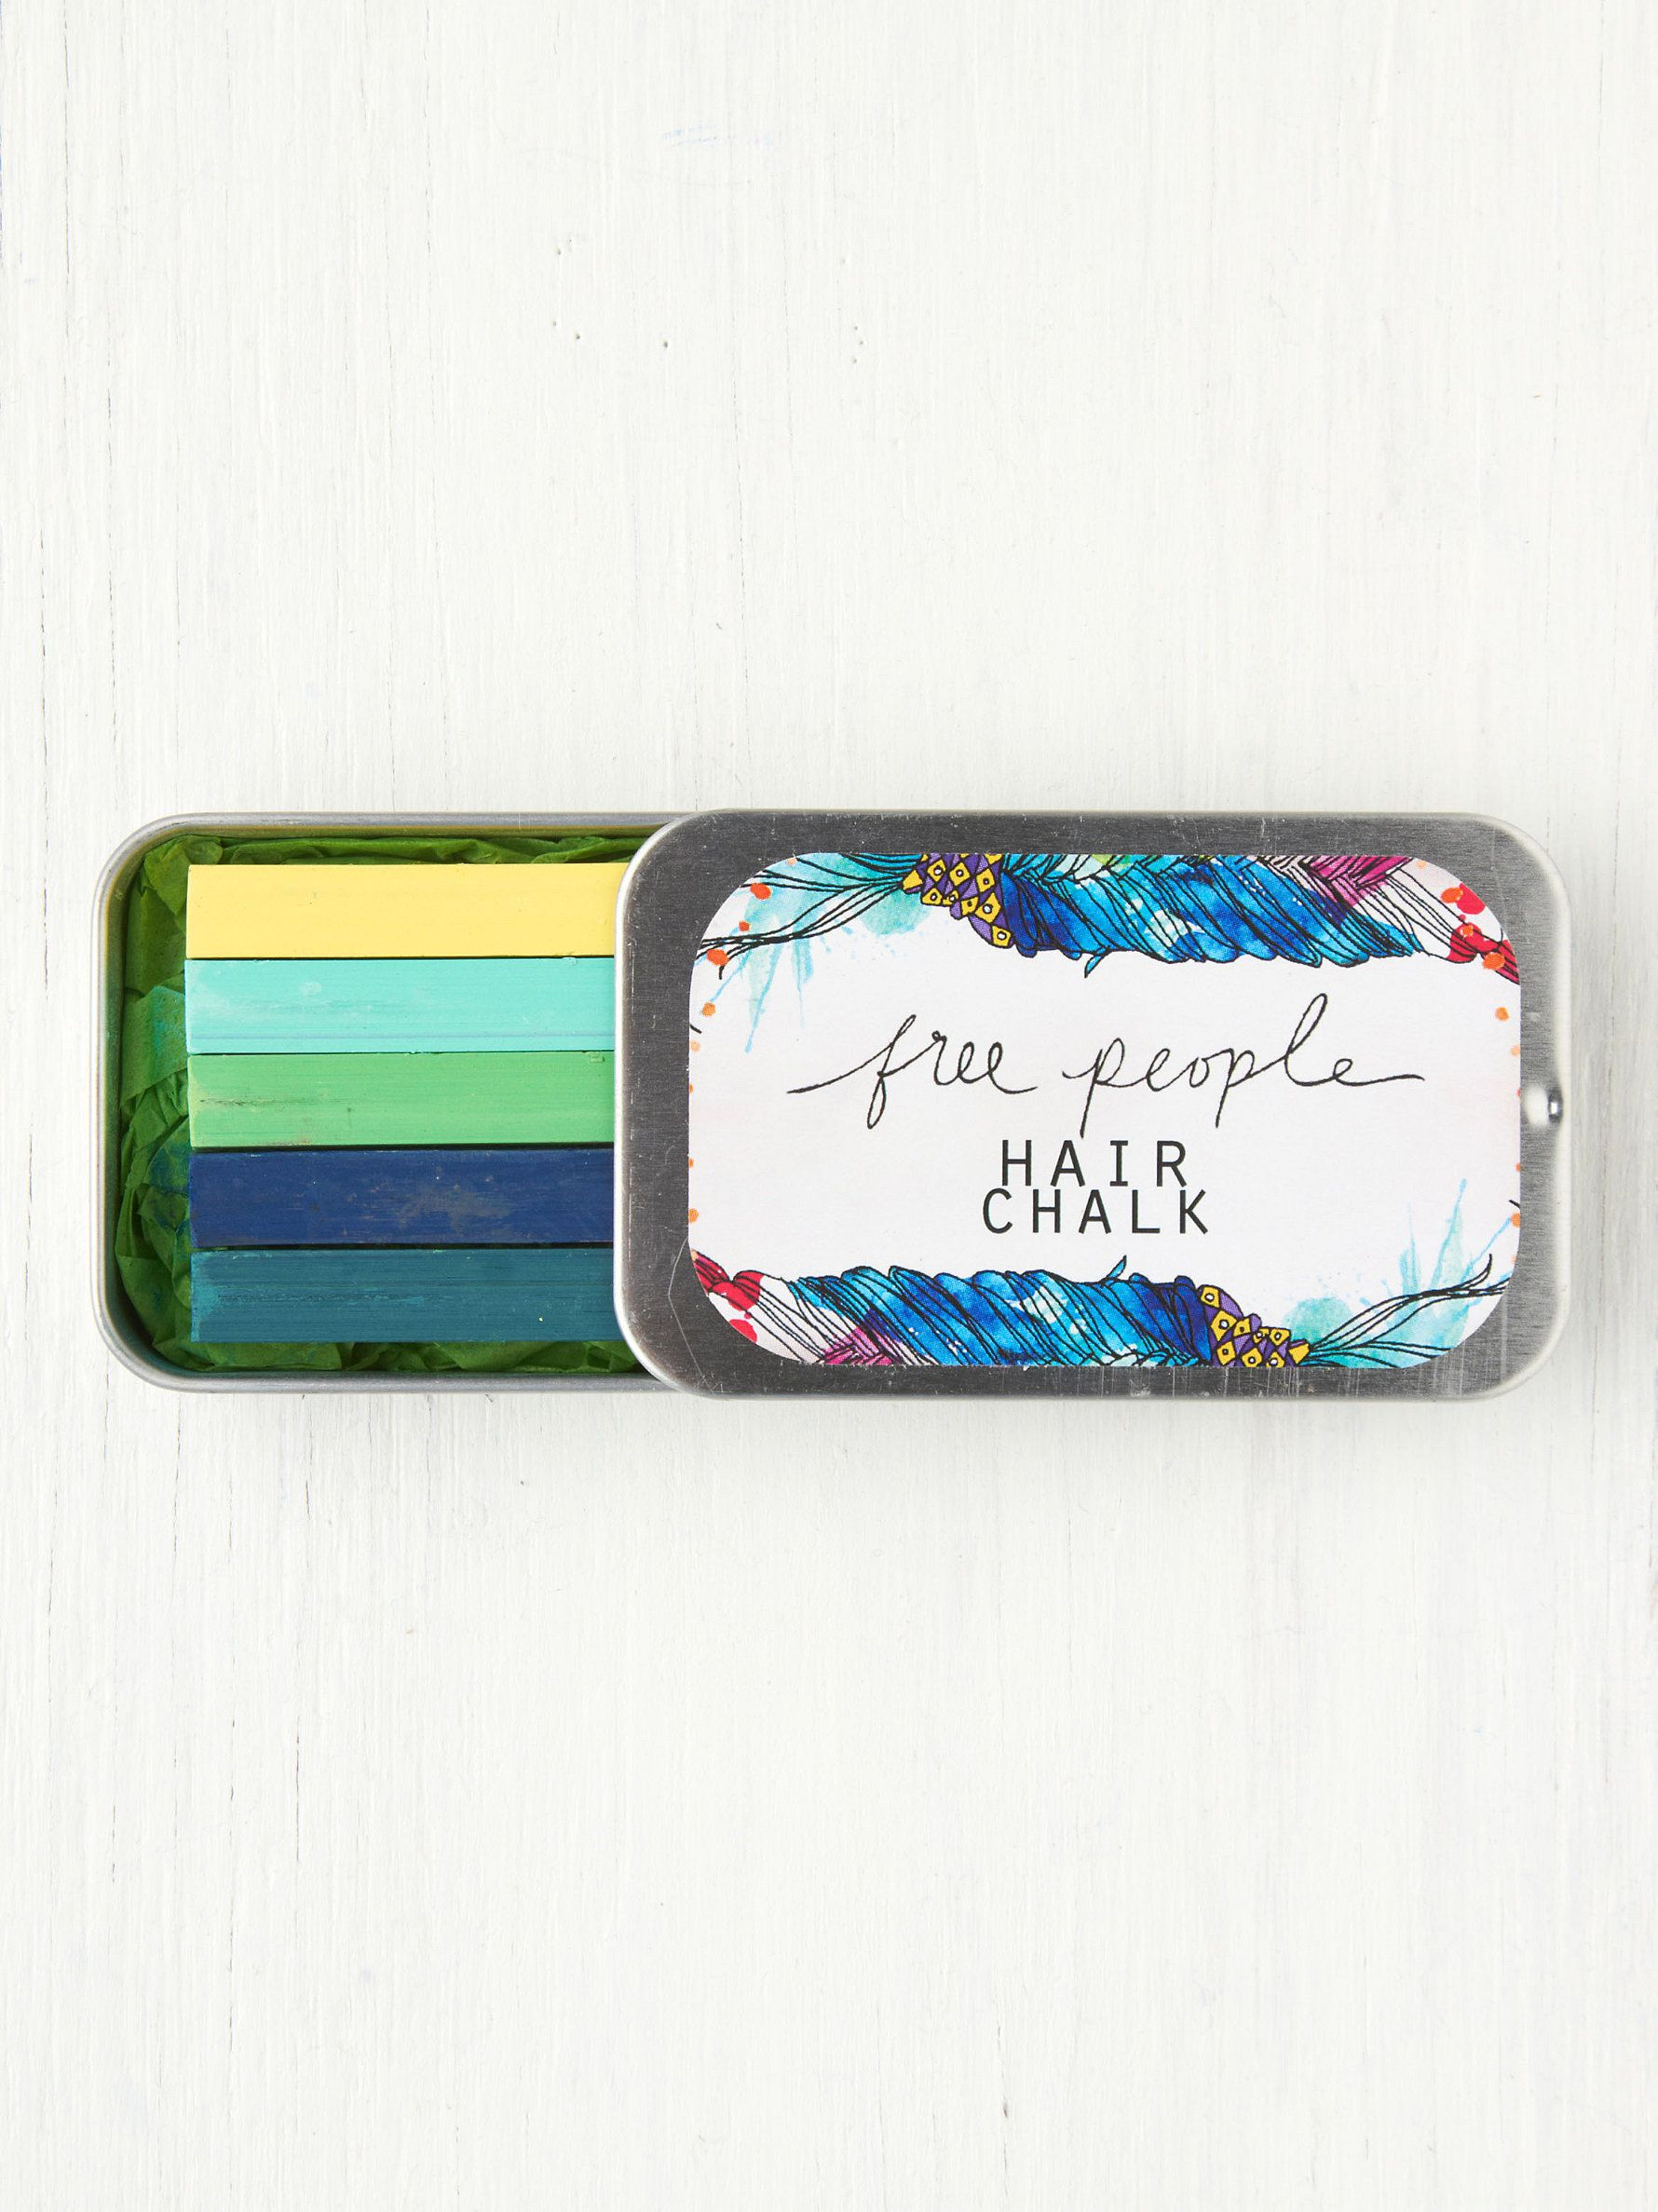 Free People Hair Chalk. Thanks to my sis Jen for the early b day present!